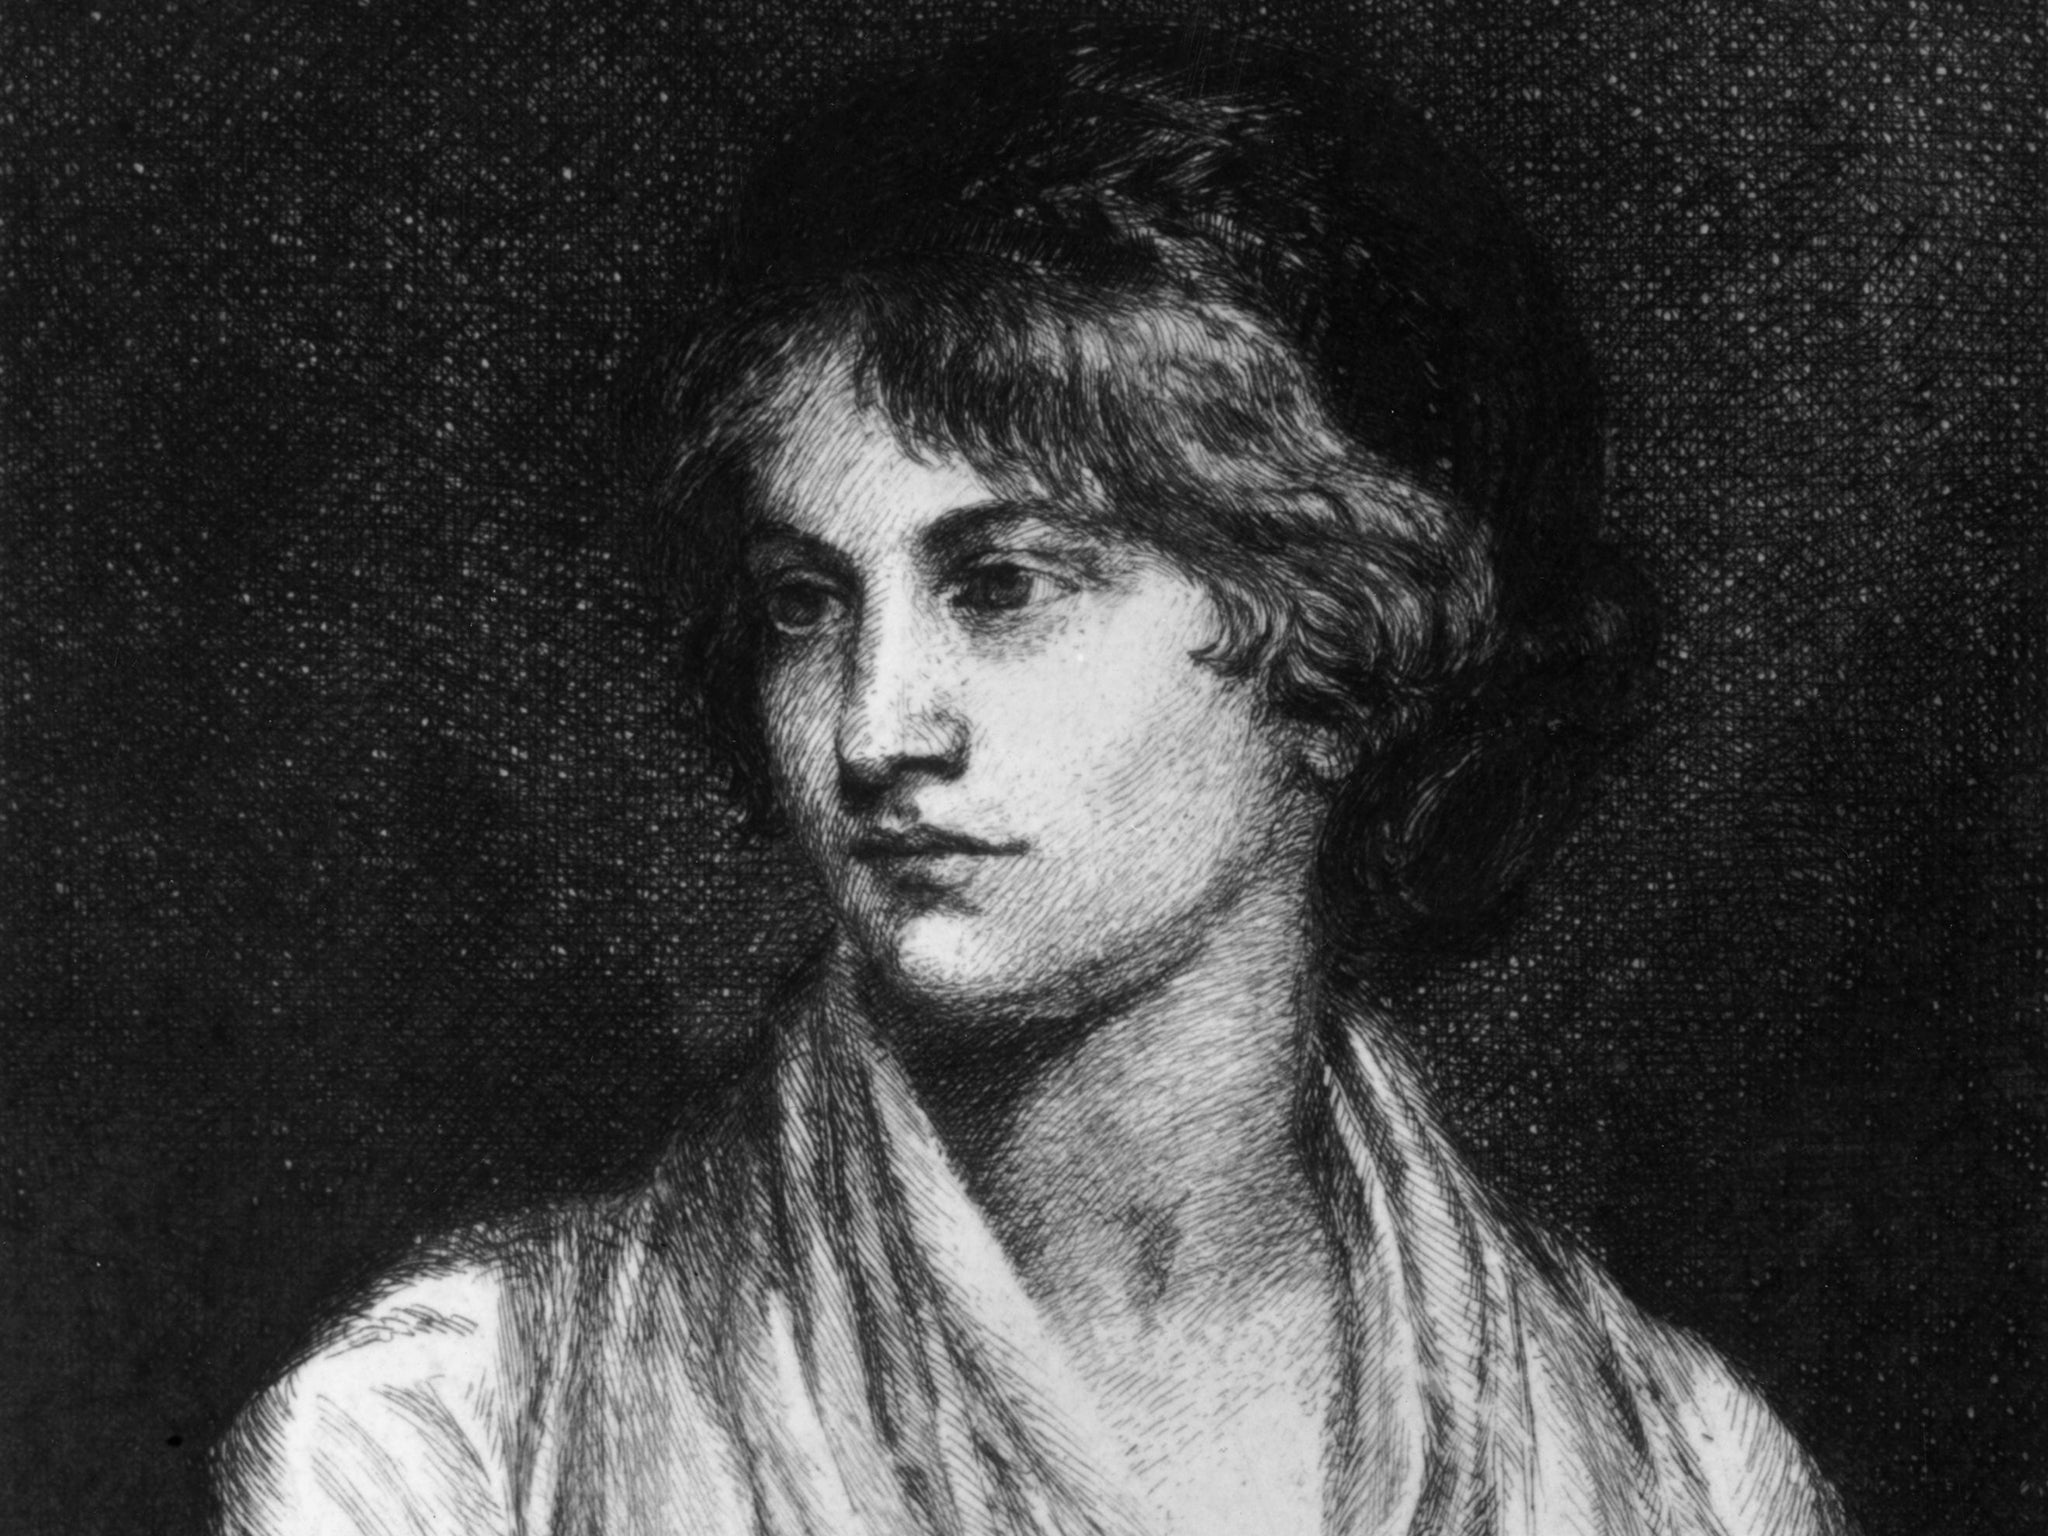 mary wollstonecraft frontrunner of feminism get a statue at mary wollstonecraft frontrunner of feminism get a statue at last the independent